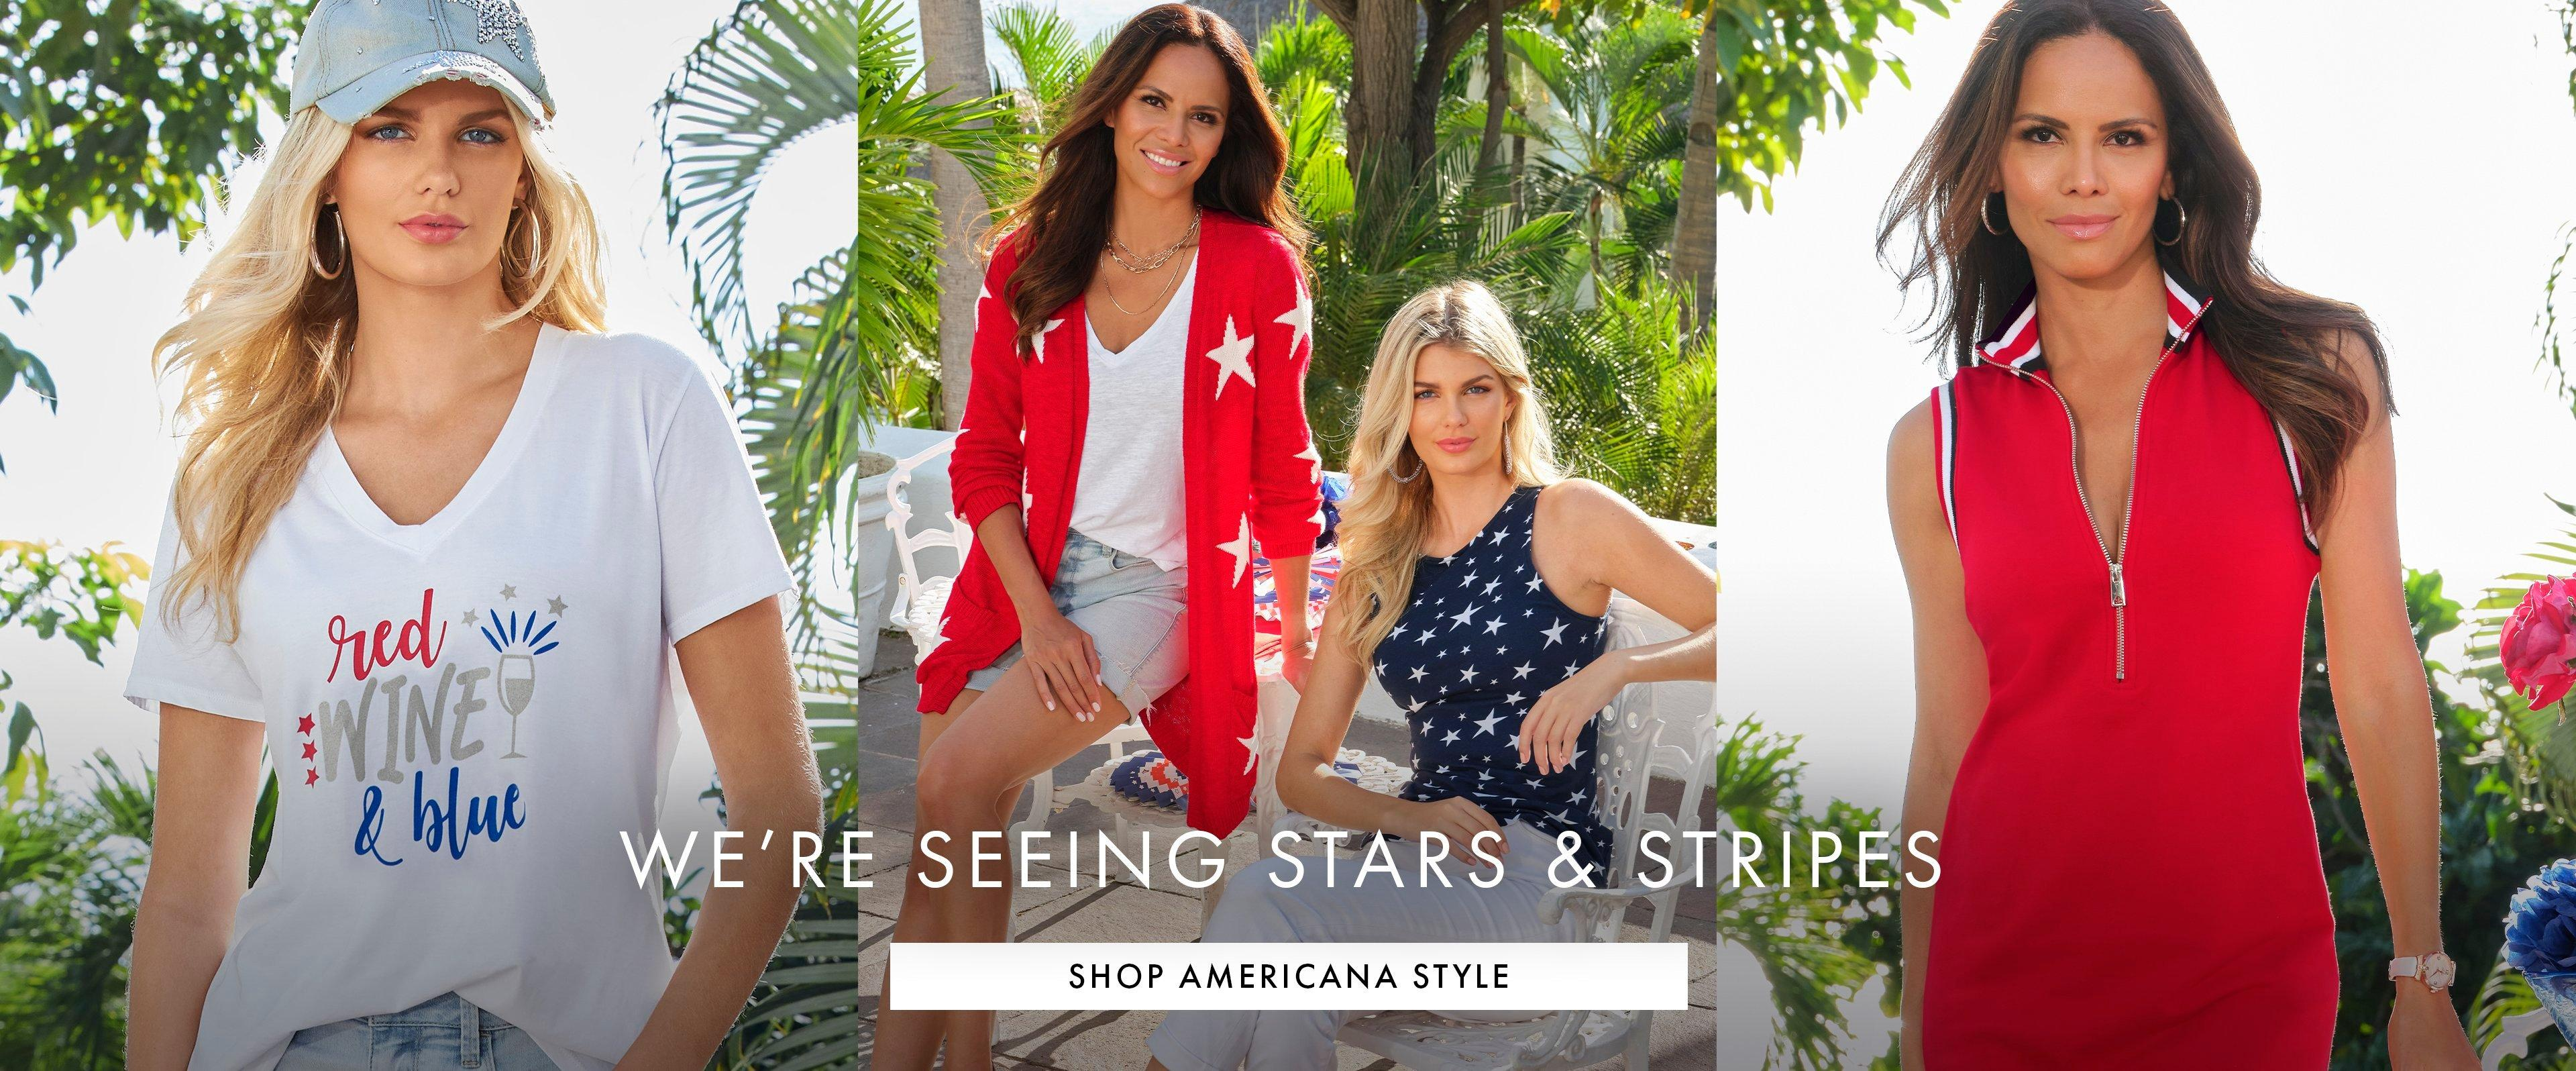 going from left to right: model wearing a white graphic tee with red, white, and blue lettering and a denim embellished baseball cap. model wearing a red and white star printed cardigan, white v-neck tee, and light wash jeans. model wearing a navy and white star printed sleeveless top and light wash jeans. model wearing a red, white, and blue sleeveless sport dress.